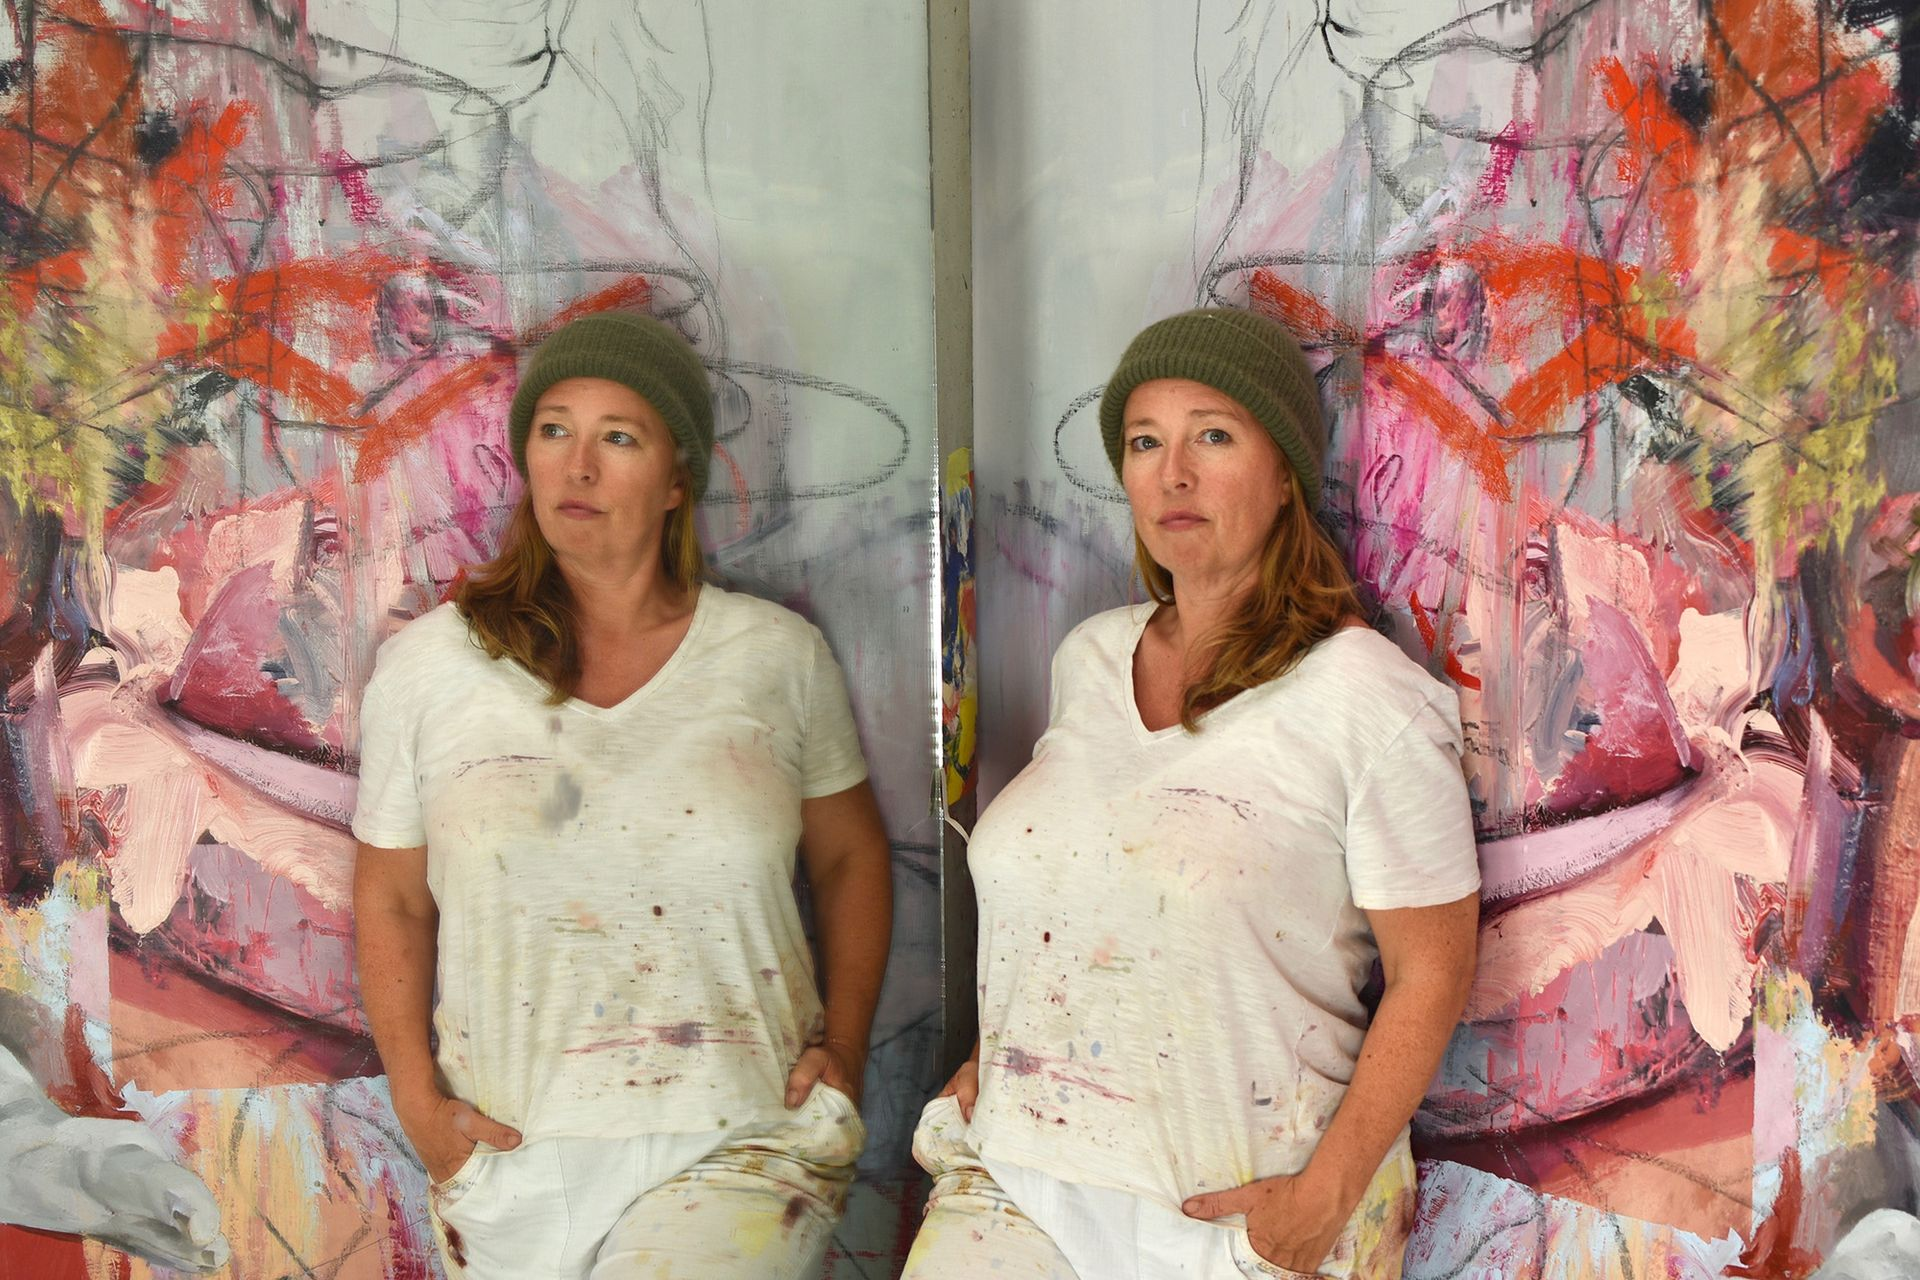 In our latest A brush with... podcast, we speak to the artist Jenny Saville about her life and work Photo courtesy of the artist and Gagosian